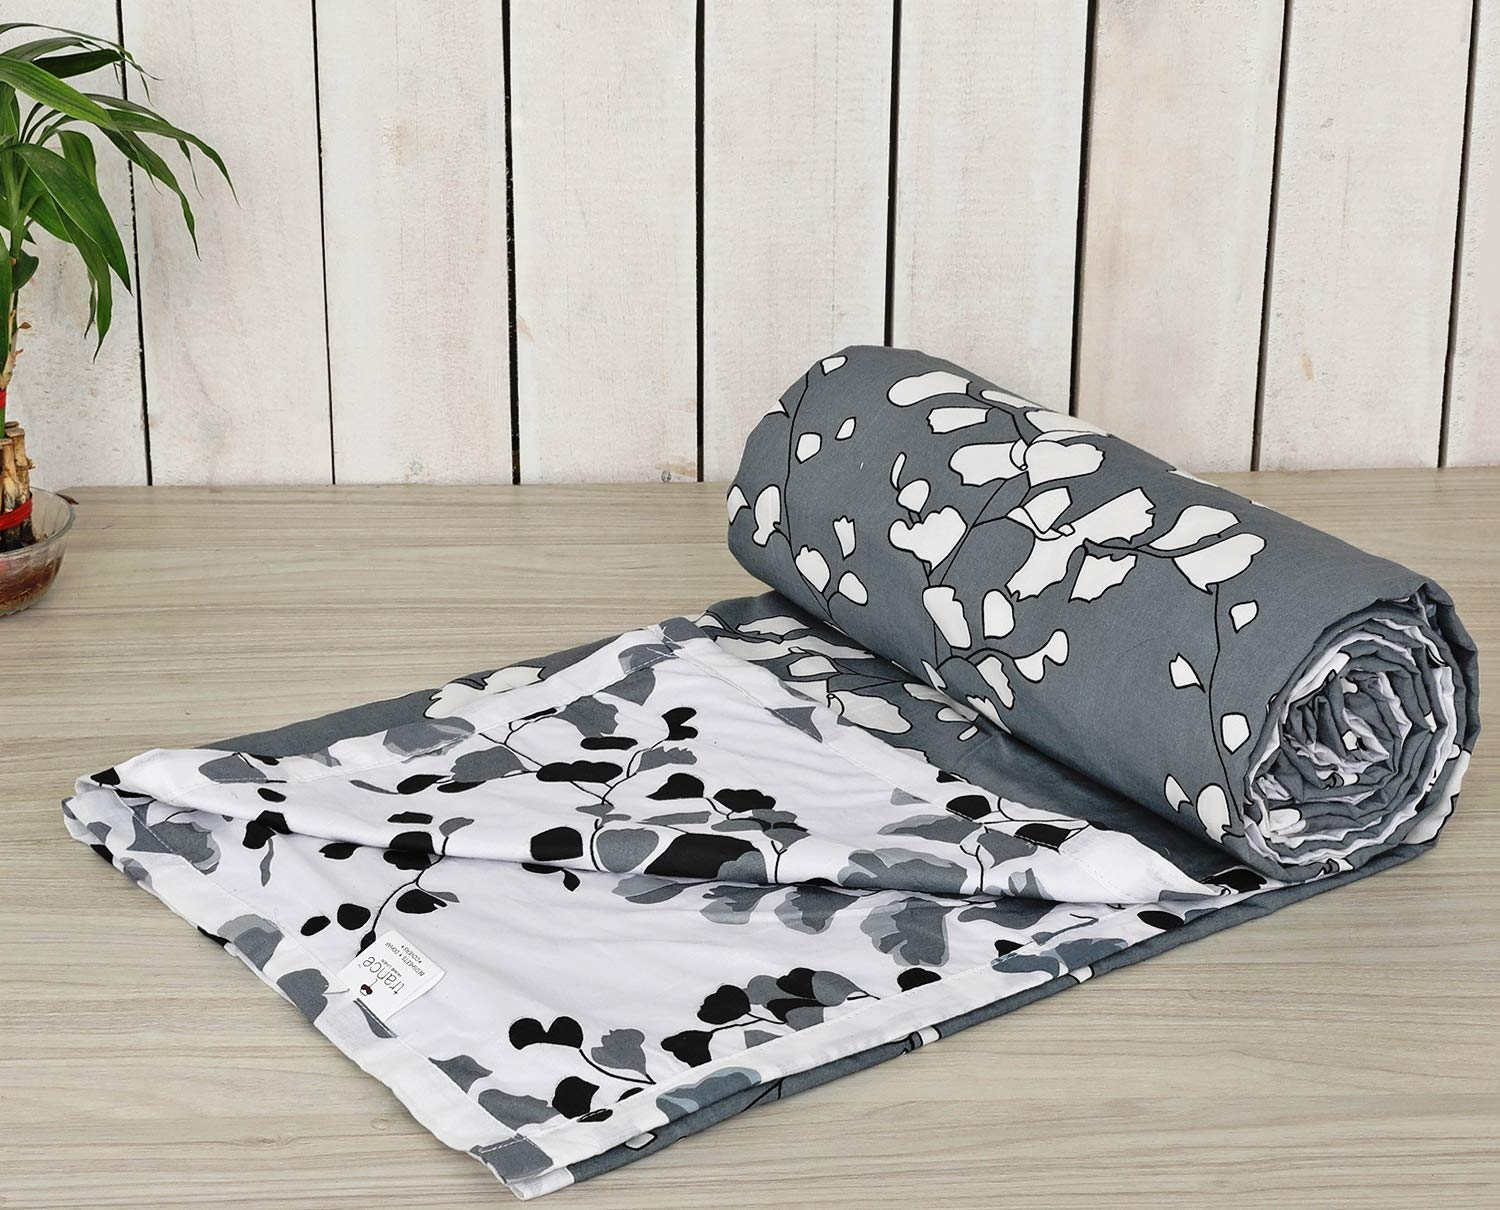 Trance Home Linen Cotton Double Dohar-LEAVES Grey White